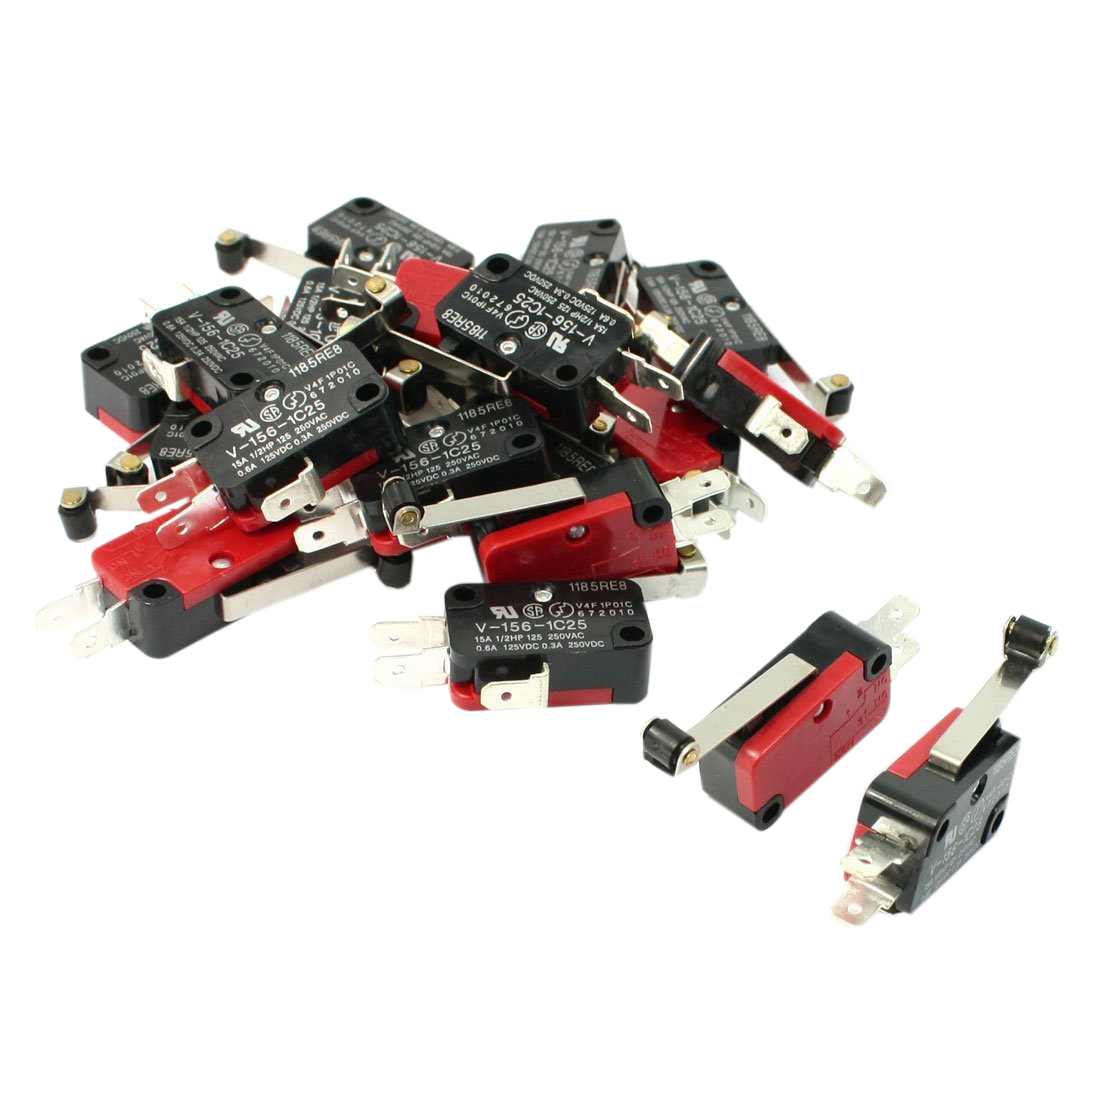 20 Pcs V-156-1C25 Micro Limit Switch Long Hinge Roller Lever Arm SPDT